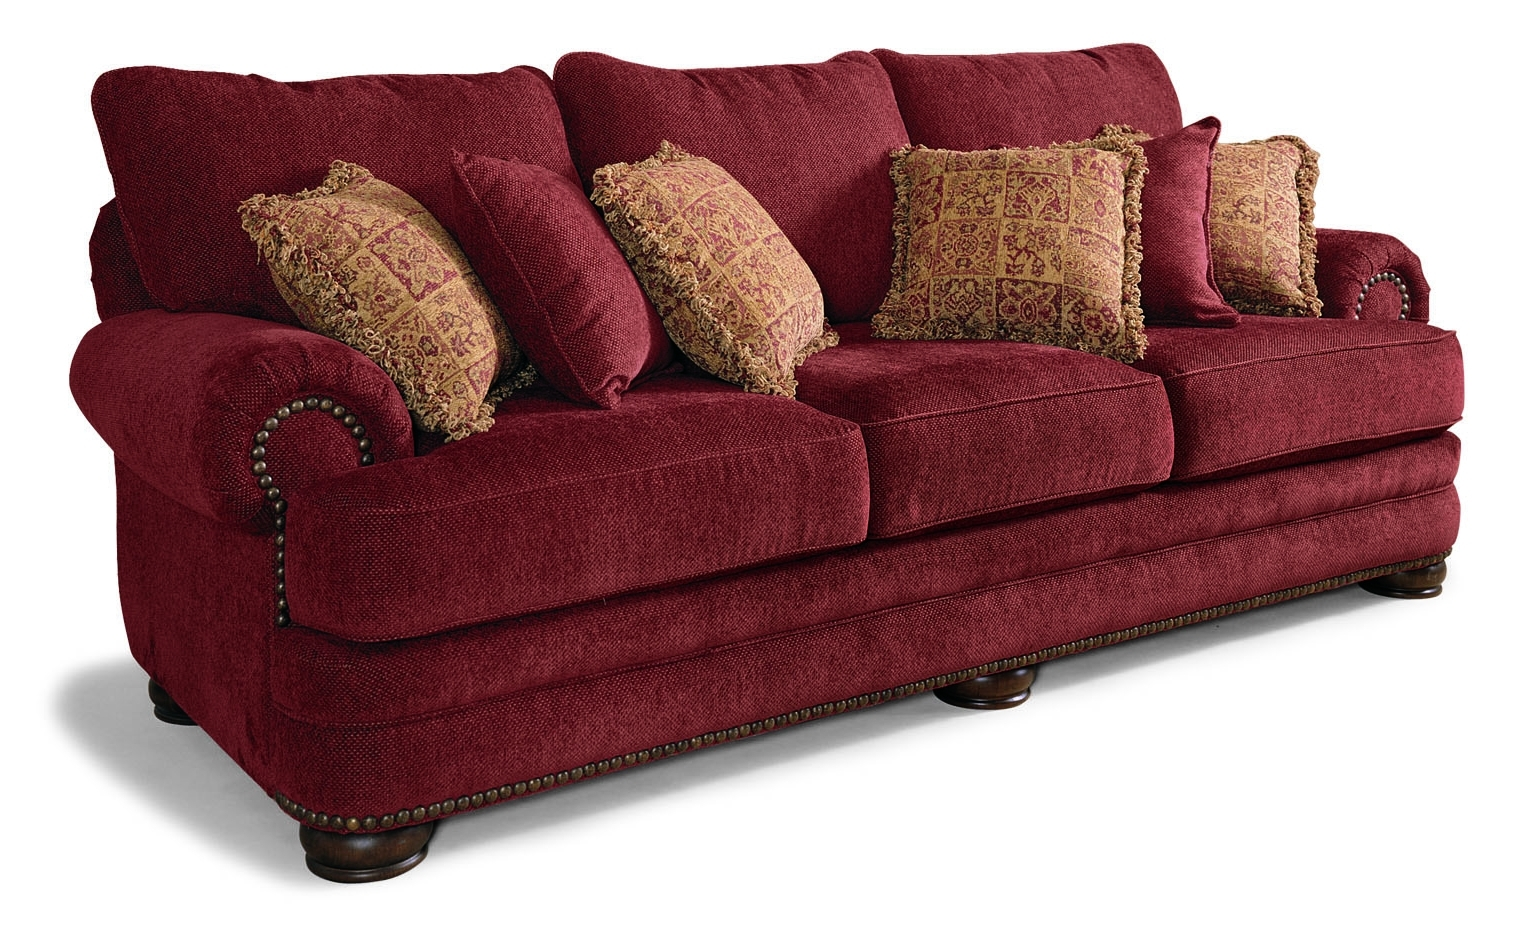 Lane Furniture Sofas In Newest Stanton Stationary Sofa – Lane 86330, 863  (View 6 of 15)